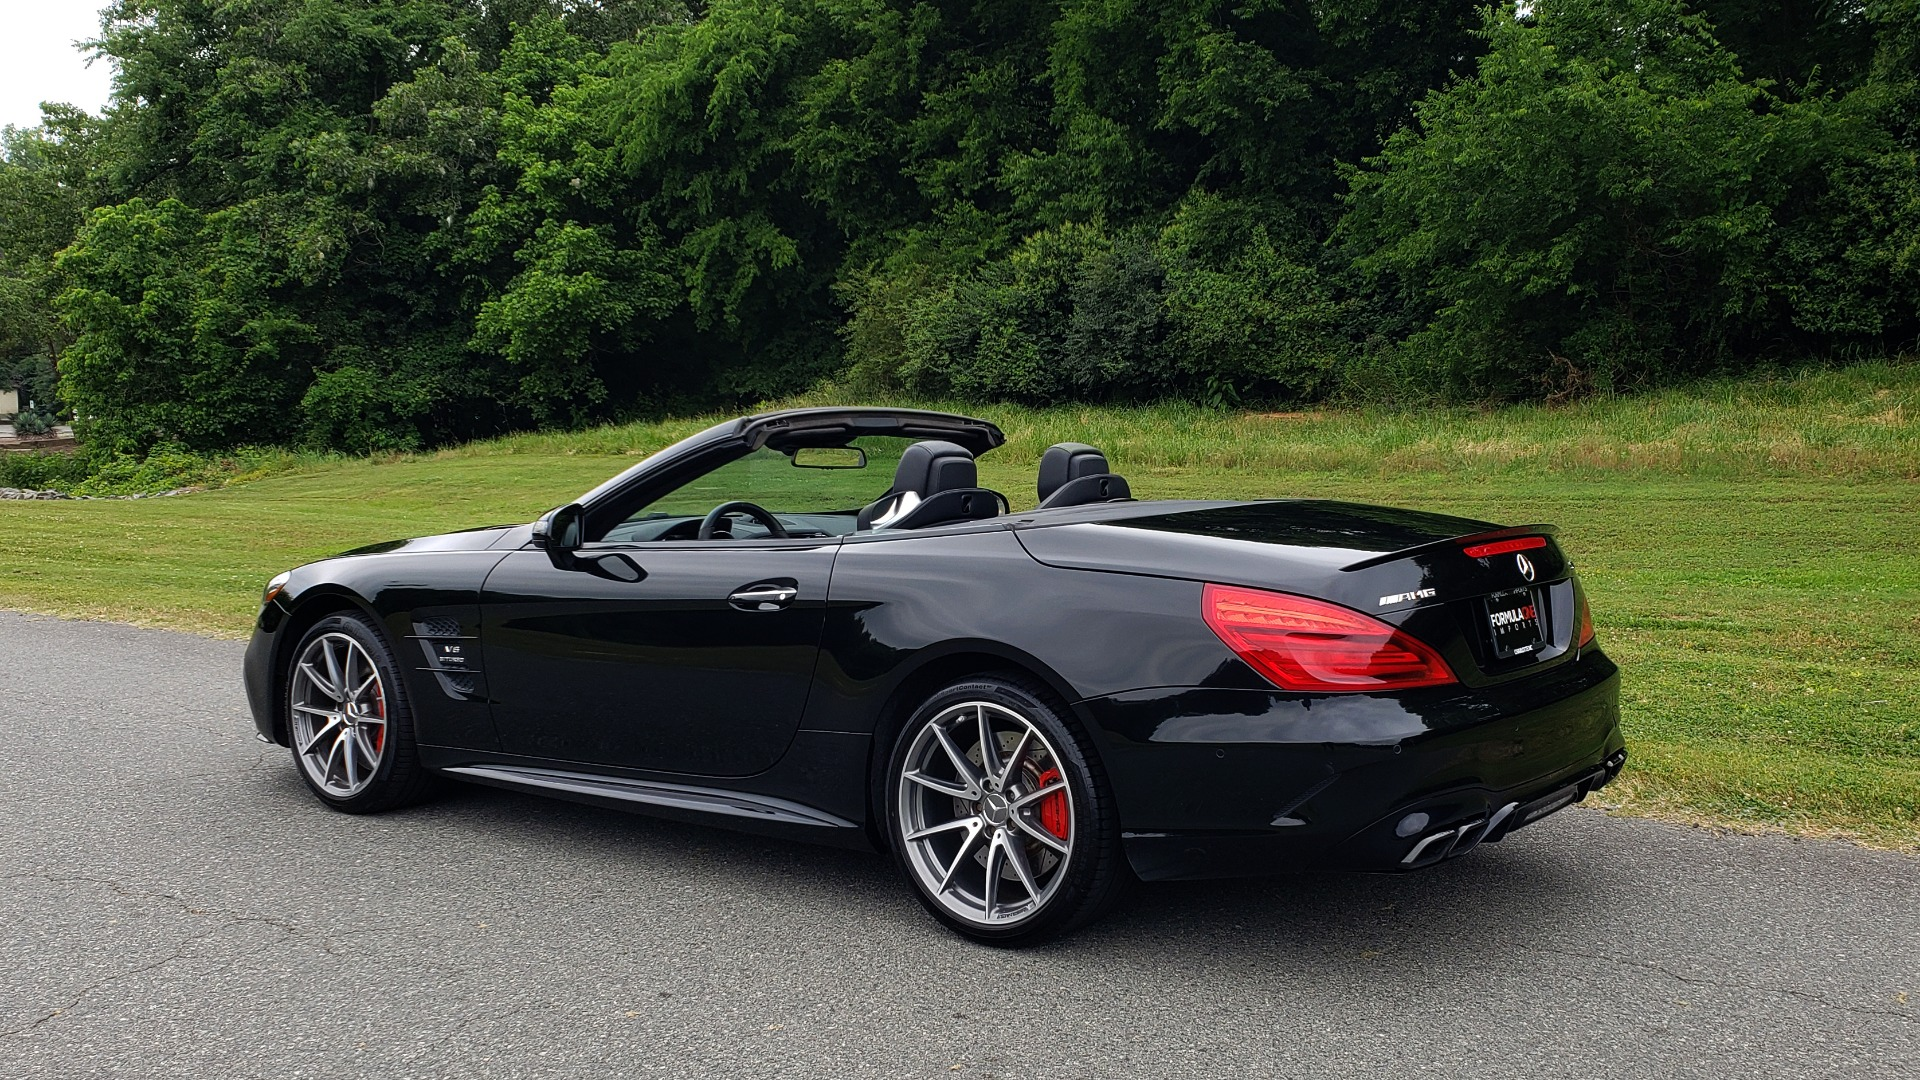 Used 2017 Mercedes-Benz SL 63 AMG / ROADSTER / DRIVER ASSIST / NAV / CAMERA for sale Sold at Formula Imports in Charlotte NC 28227 23